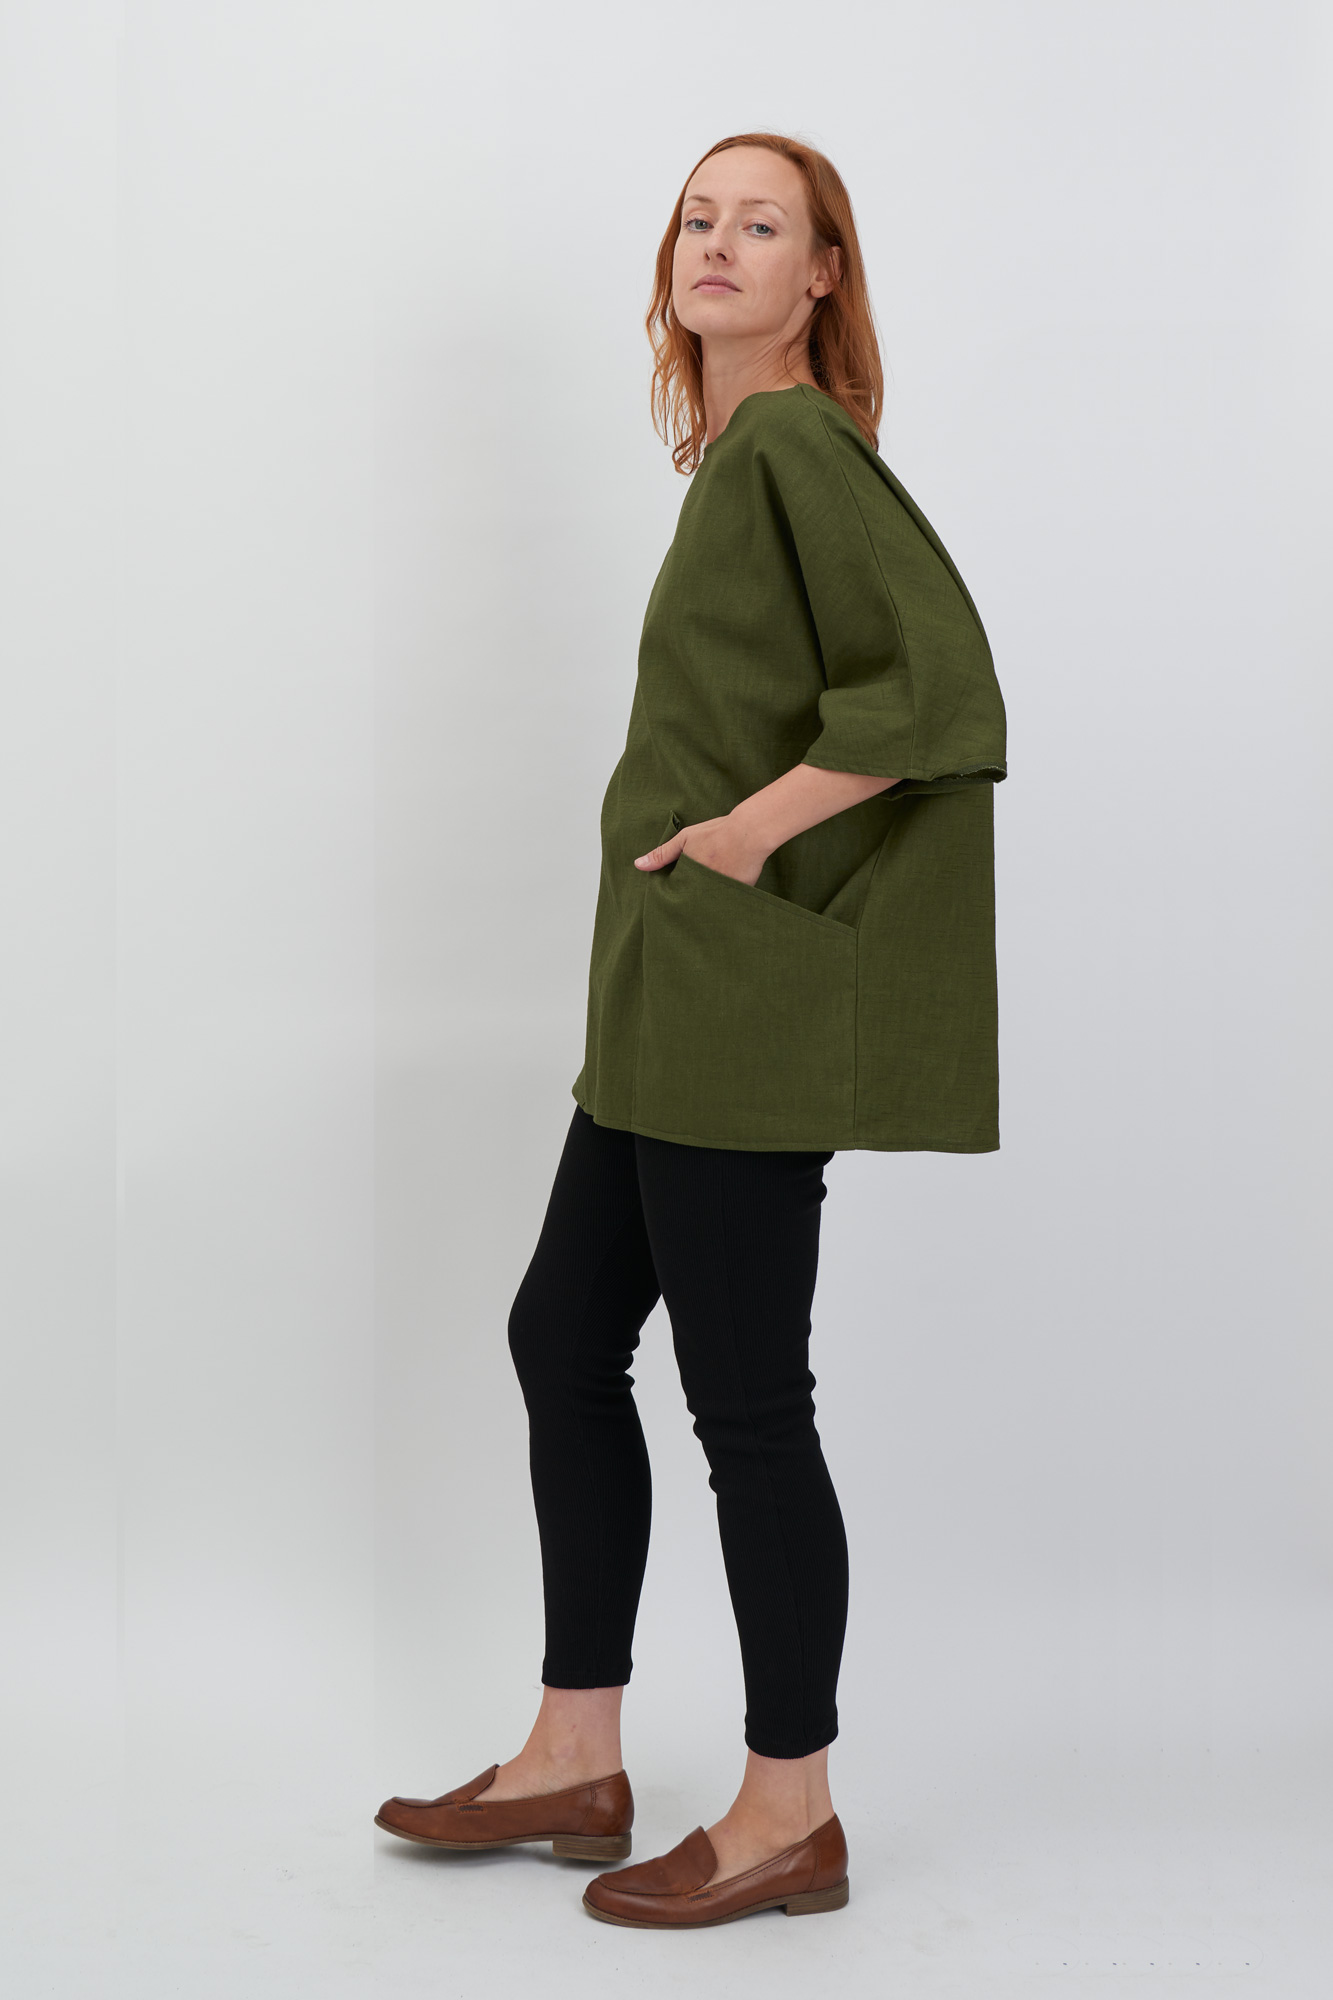 tunic-olive-front.jpg